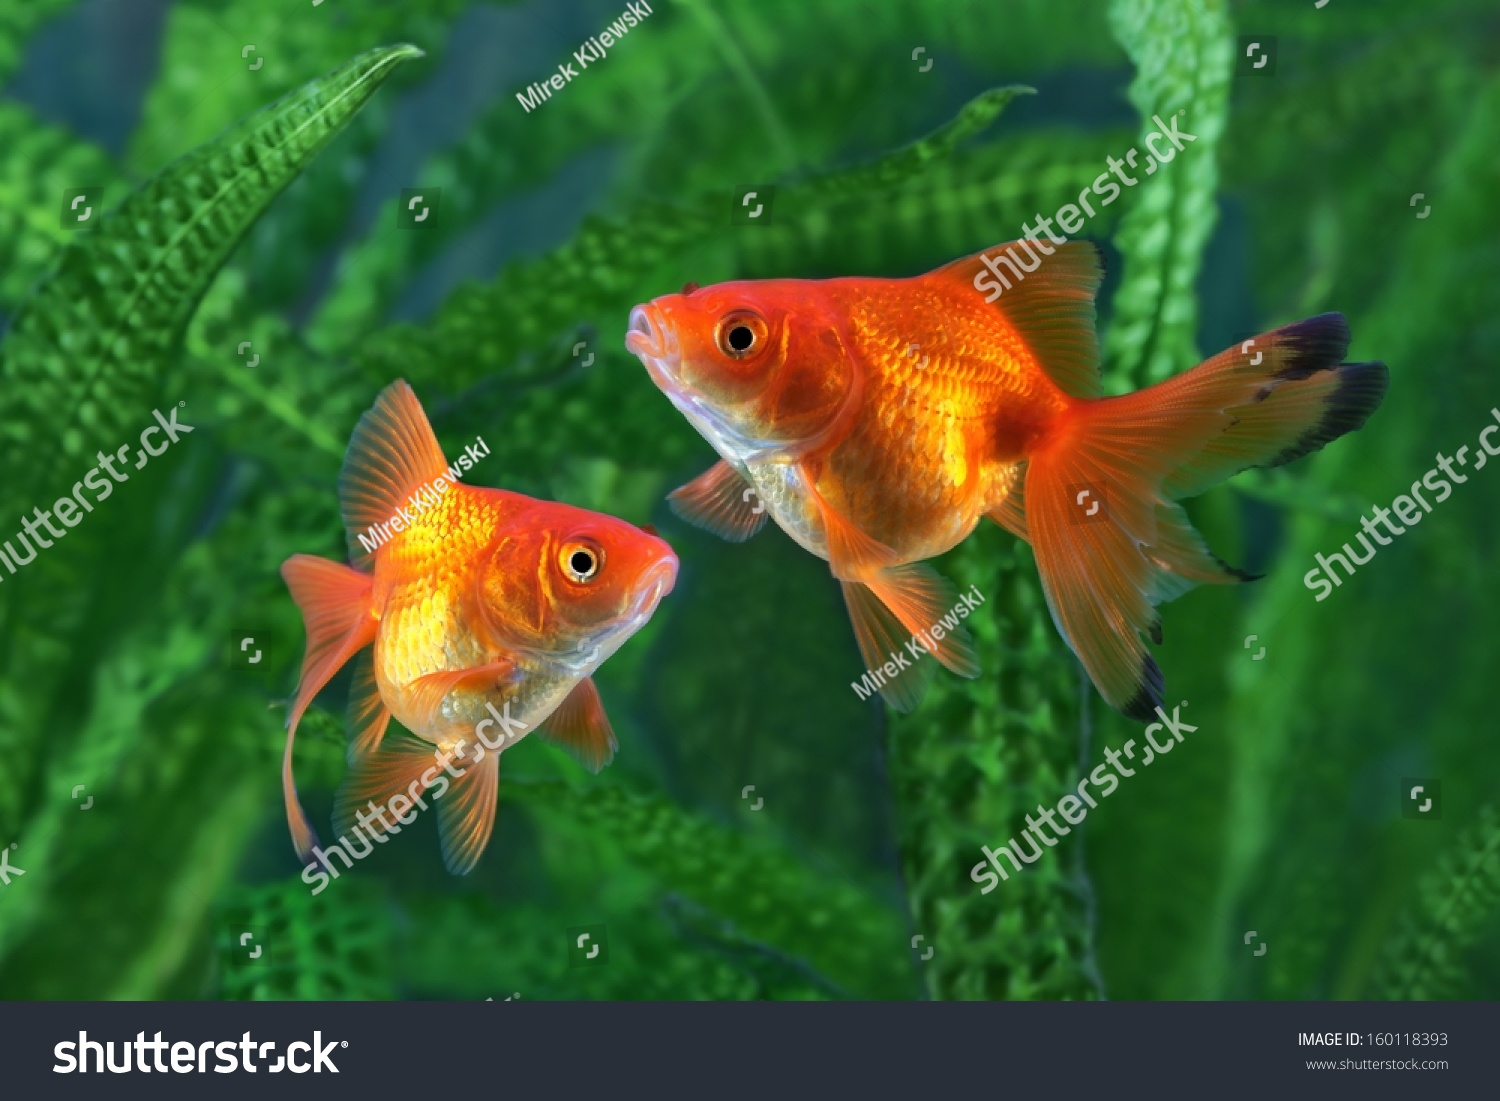 Red Blood Parrot Cichlid in aquarium plant green background. Funny ...